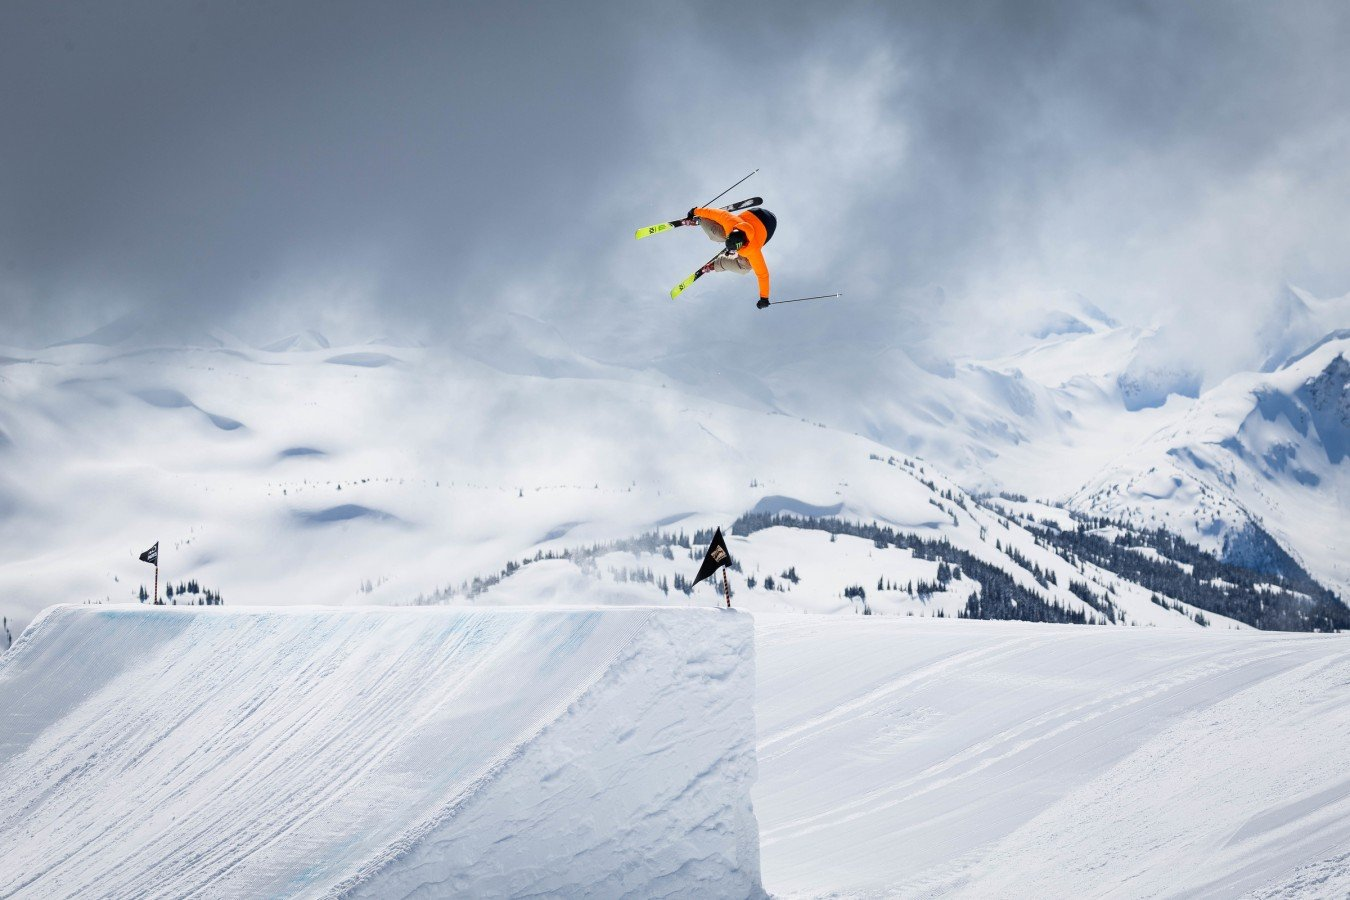 Alex Beaulieu-Marchand trains with the rest of the Canada Ski & Snowboard team in Whistler, BC on seventh Heaven.